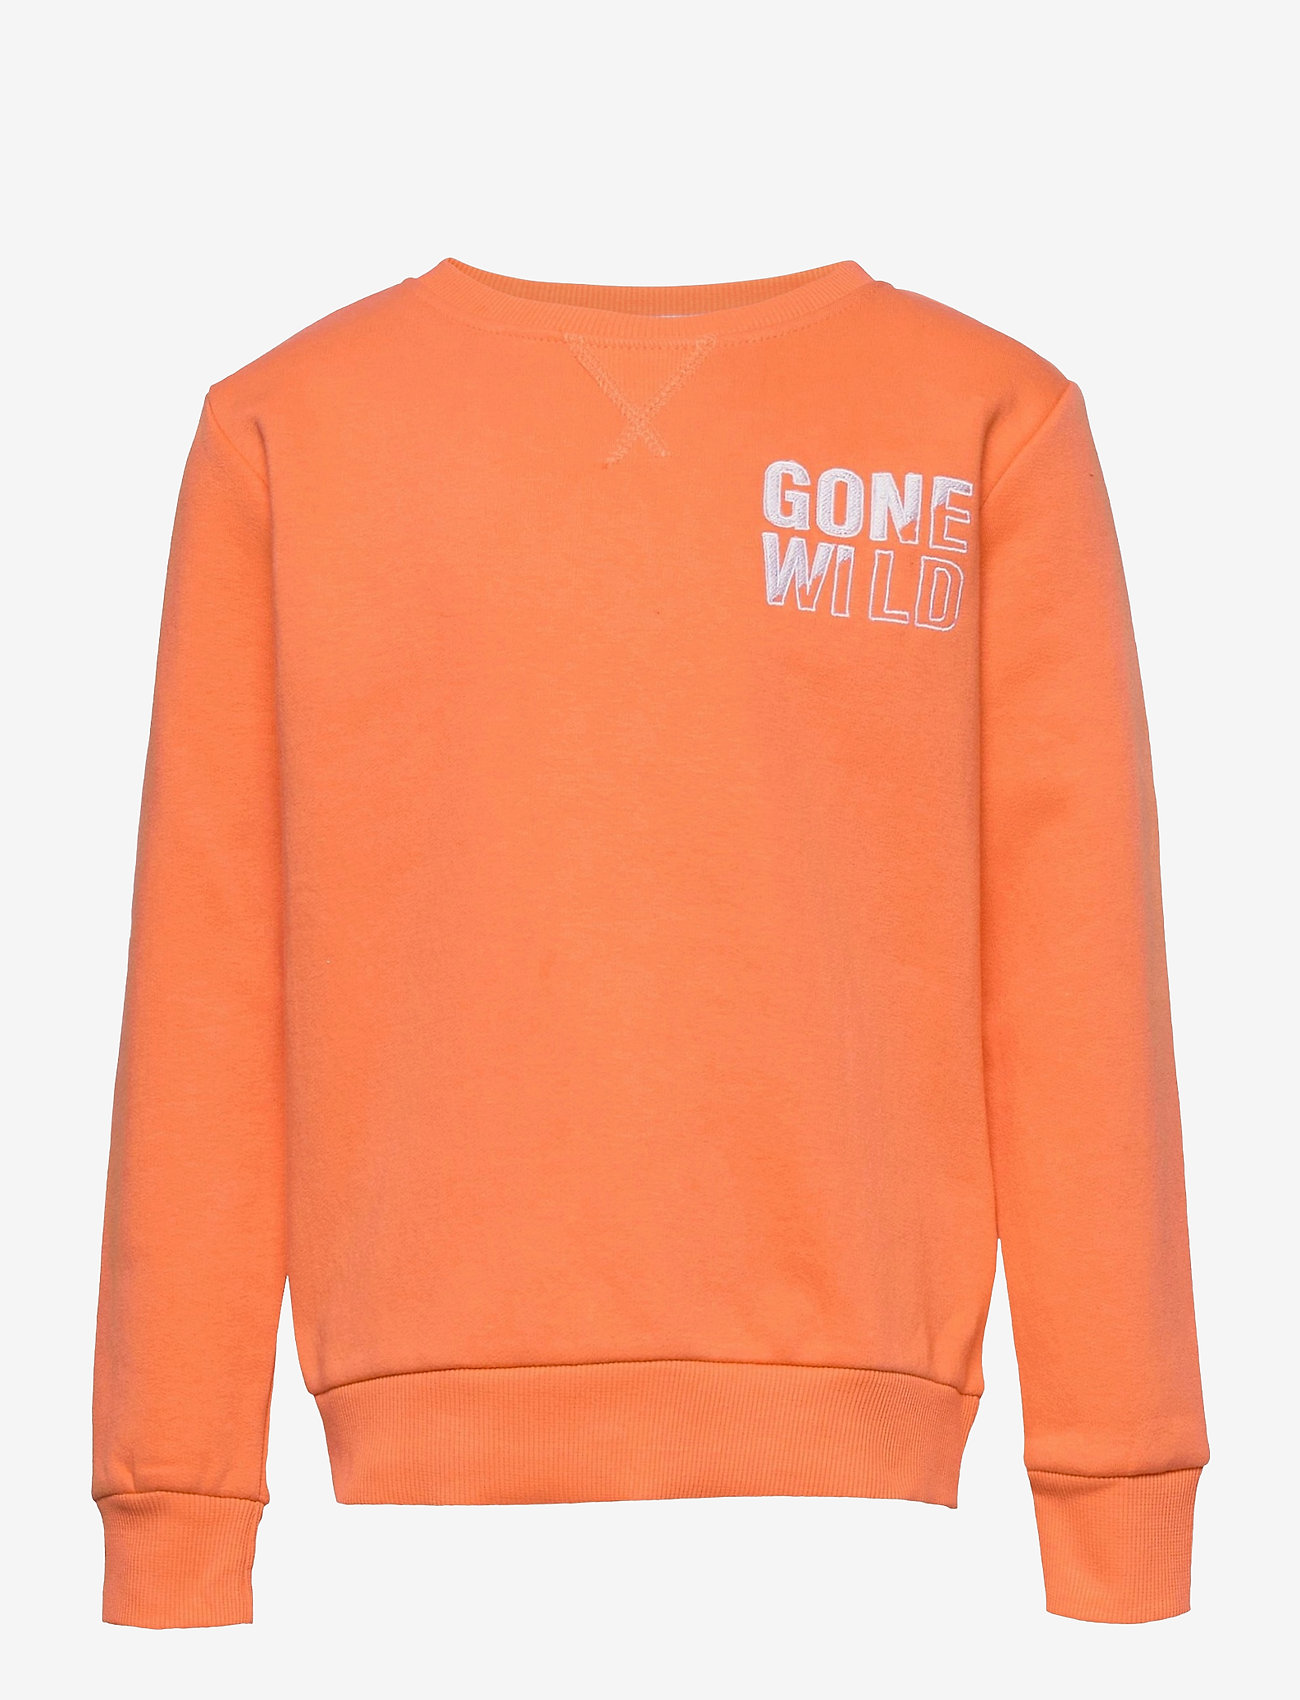 The New - TOBY SWEATSHIRT - sweatshirts - nectarine - 0